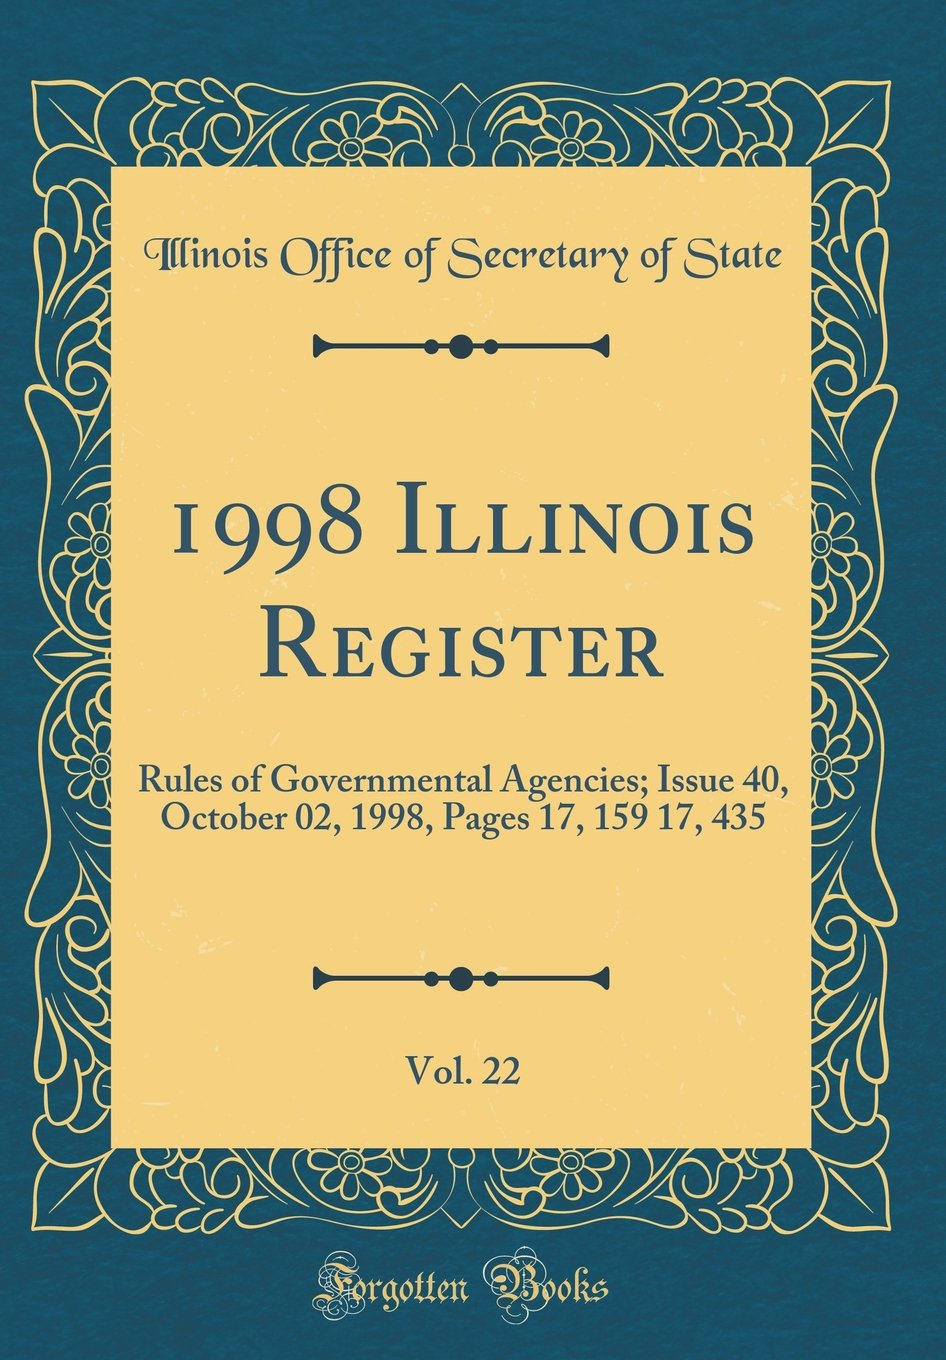 1998 Illinois Register, Vol. 22: Rules of Governmental Agencies; Issue 40, October 02, 1998, Pages 17, 159 17, 435 (Classic Reprint) pdf epub